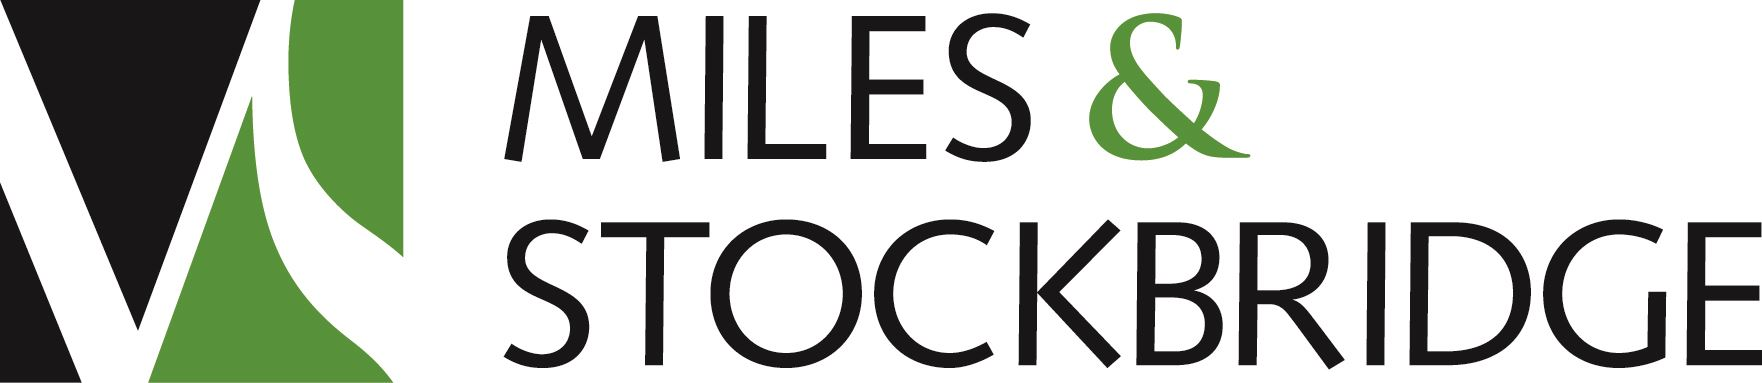 Miles.stockbridge.060420.S Logo